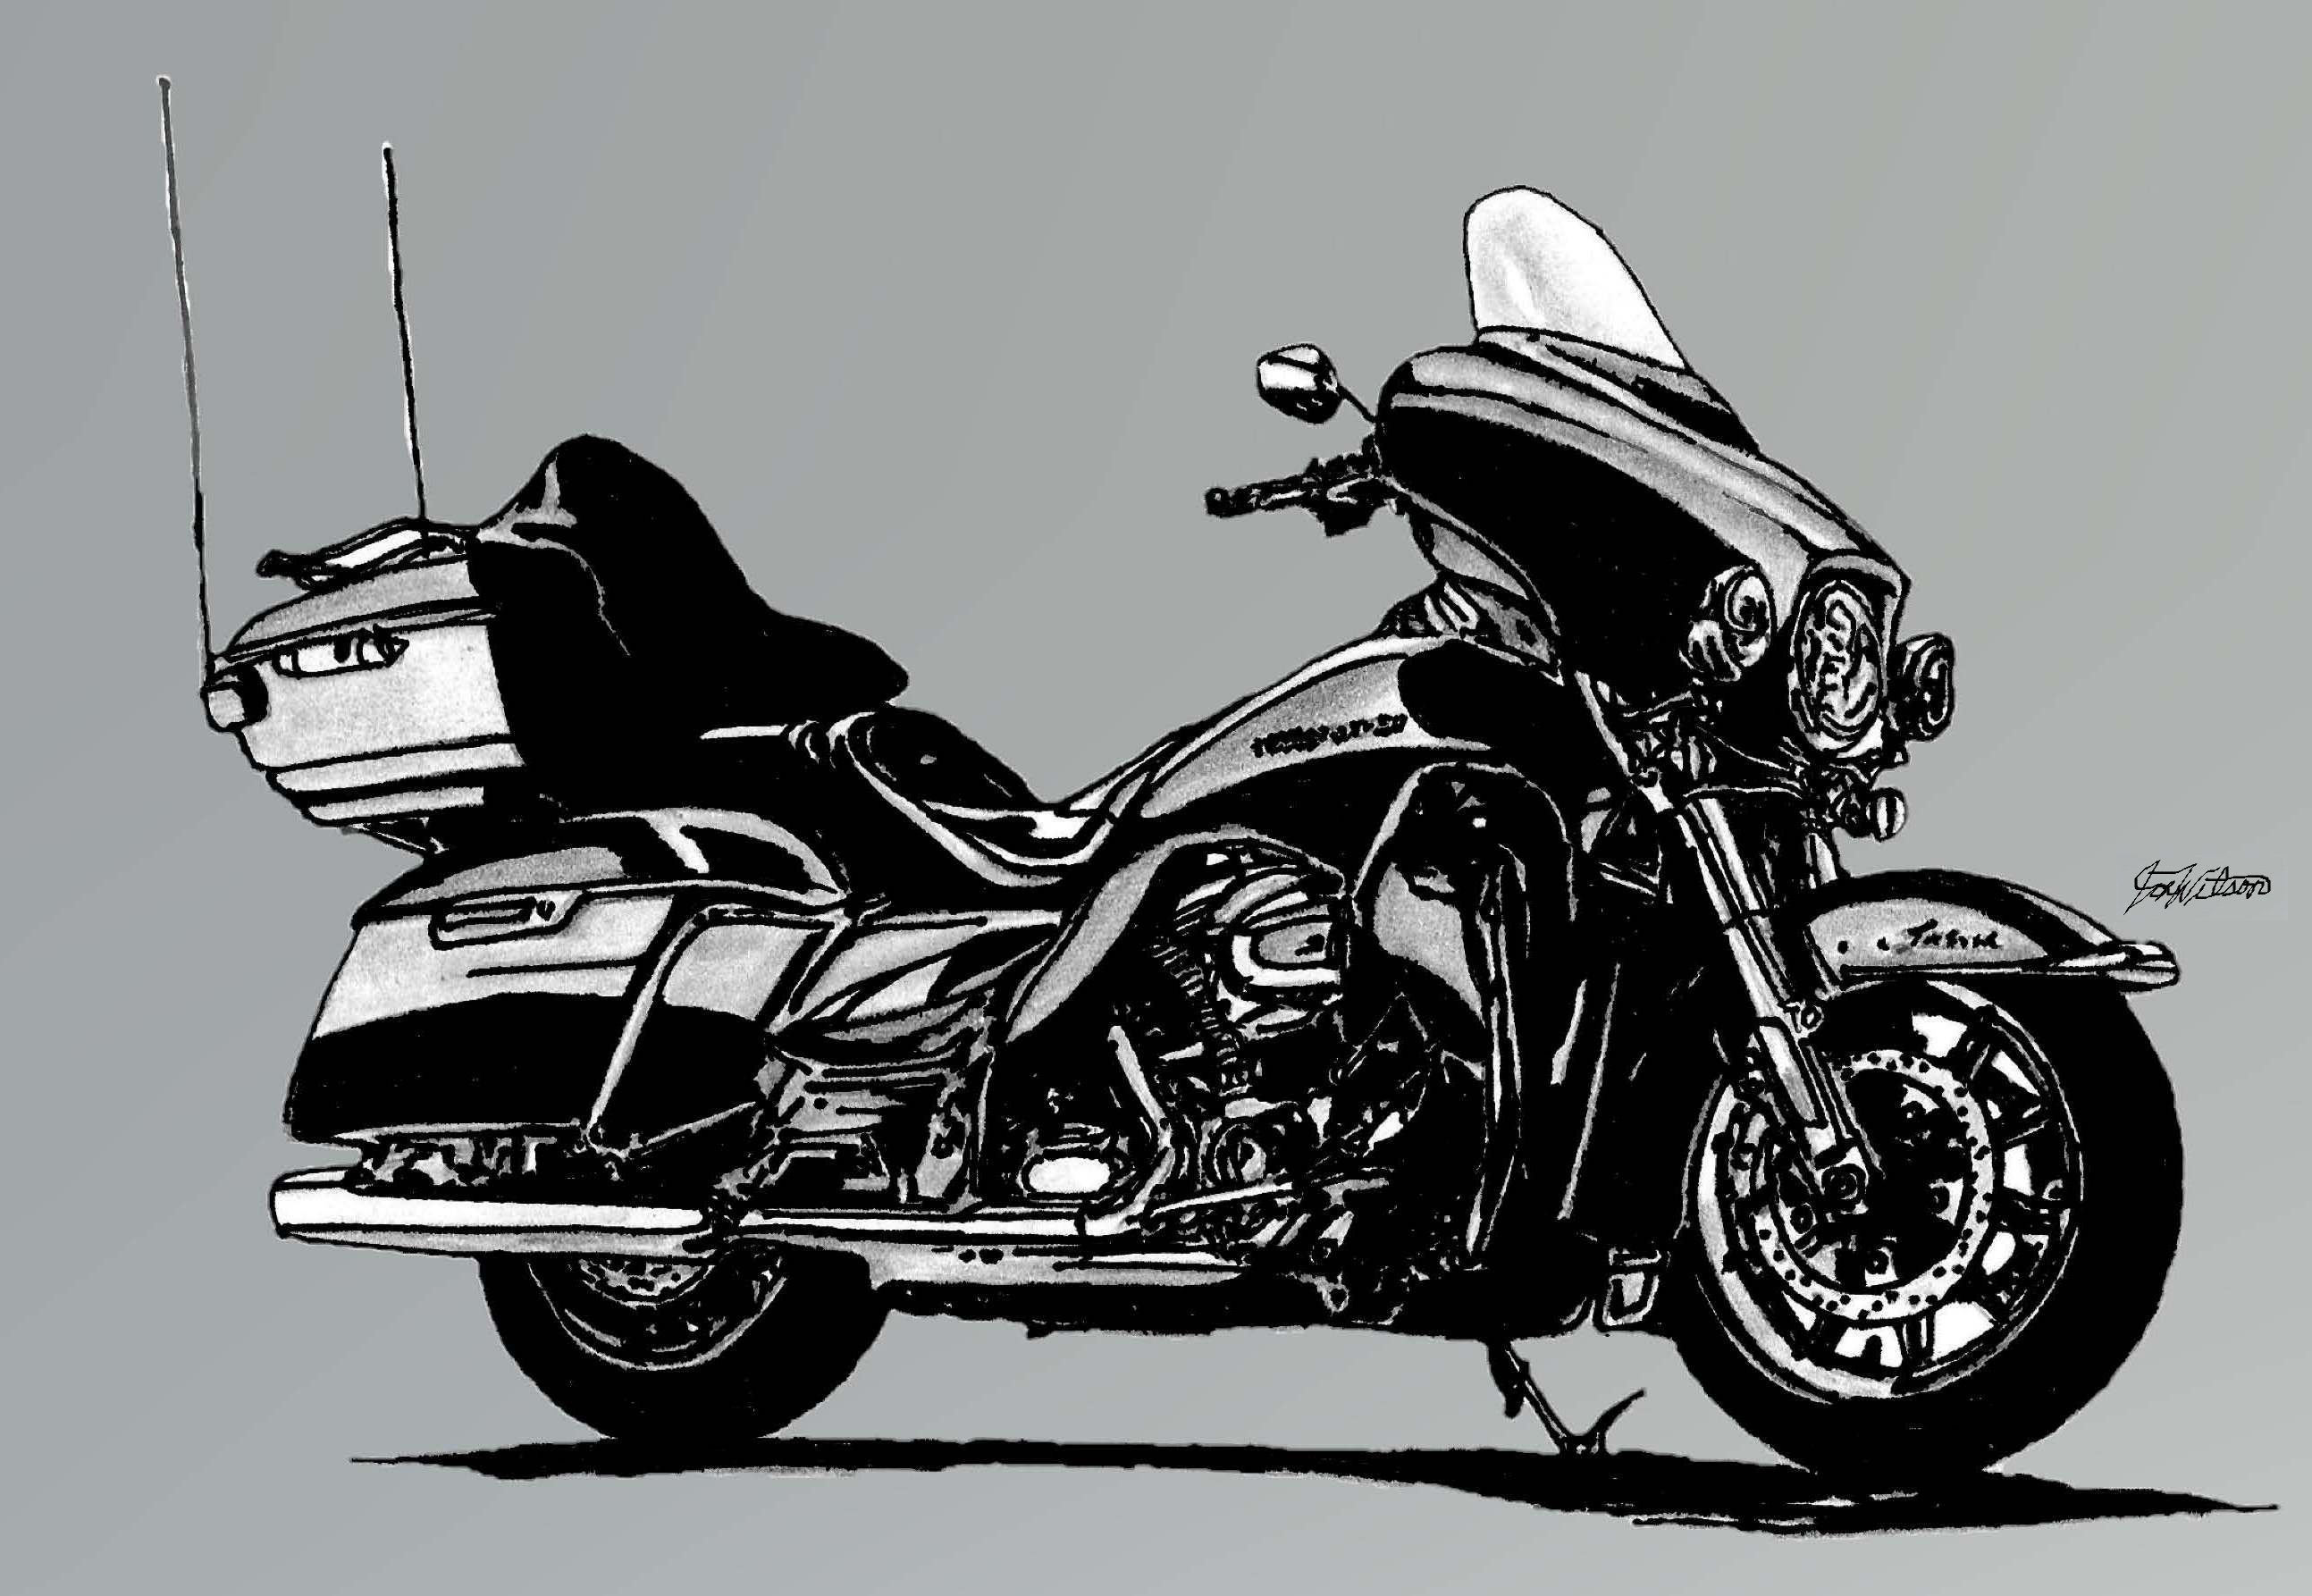 Motorcycle drawn with pencil, sharpie and digitally touch up